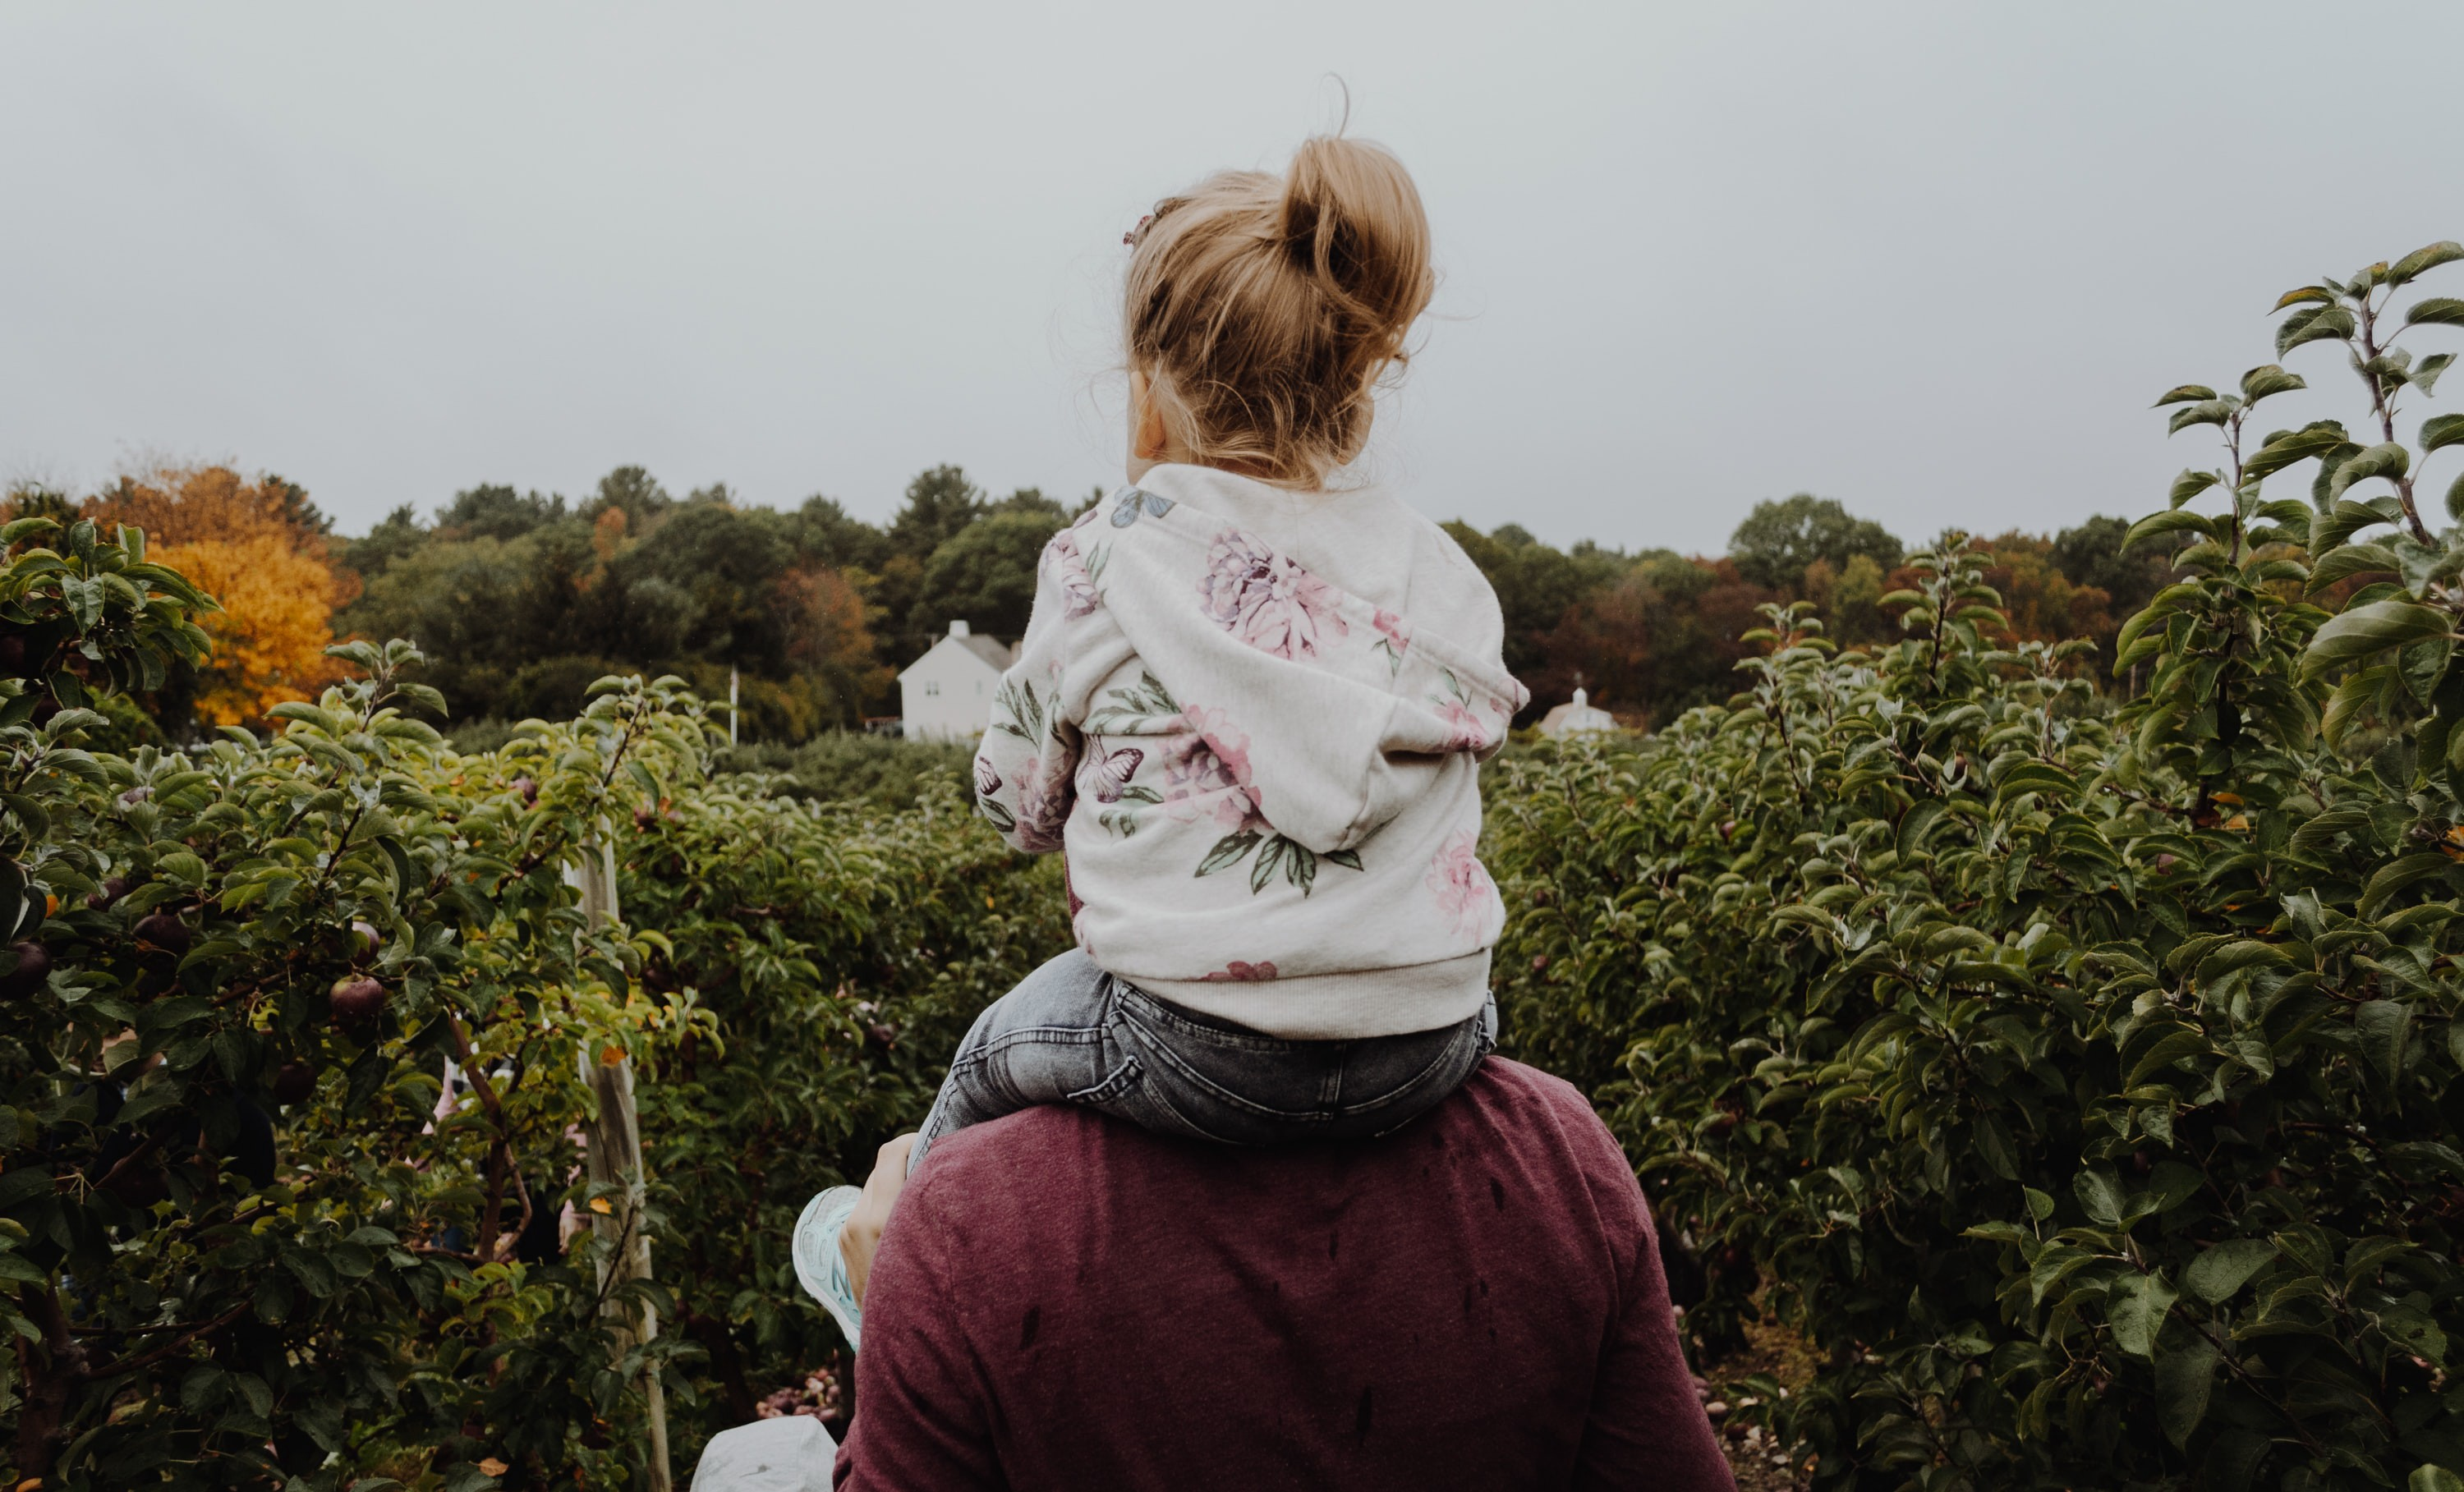 A kid on someone's shoulders.